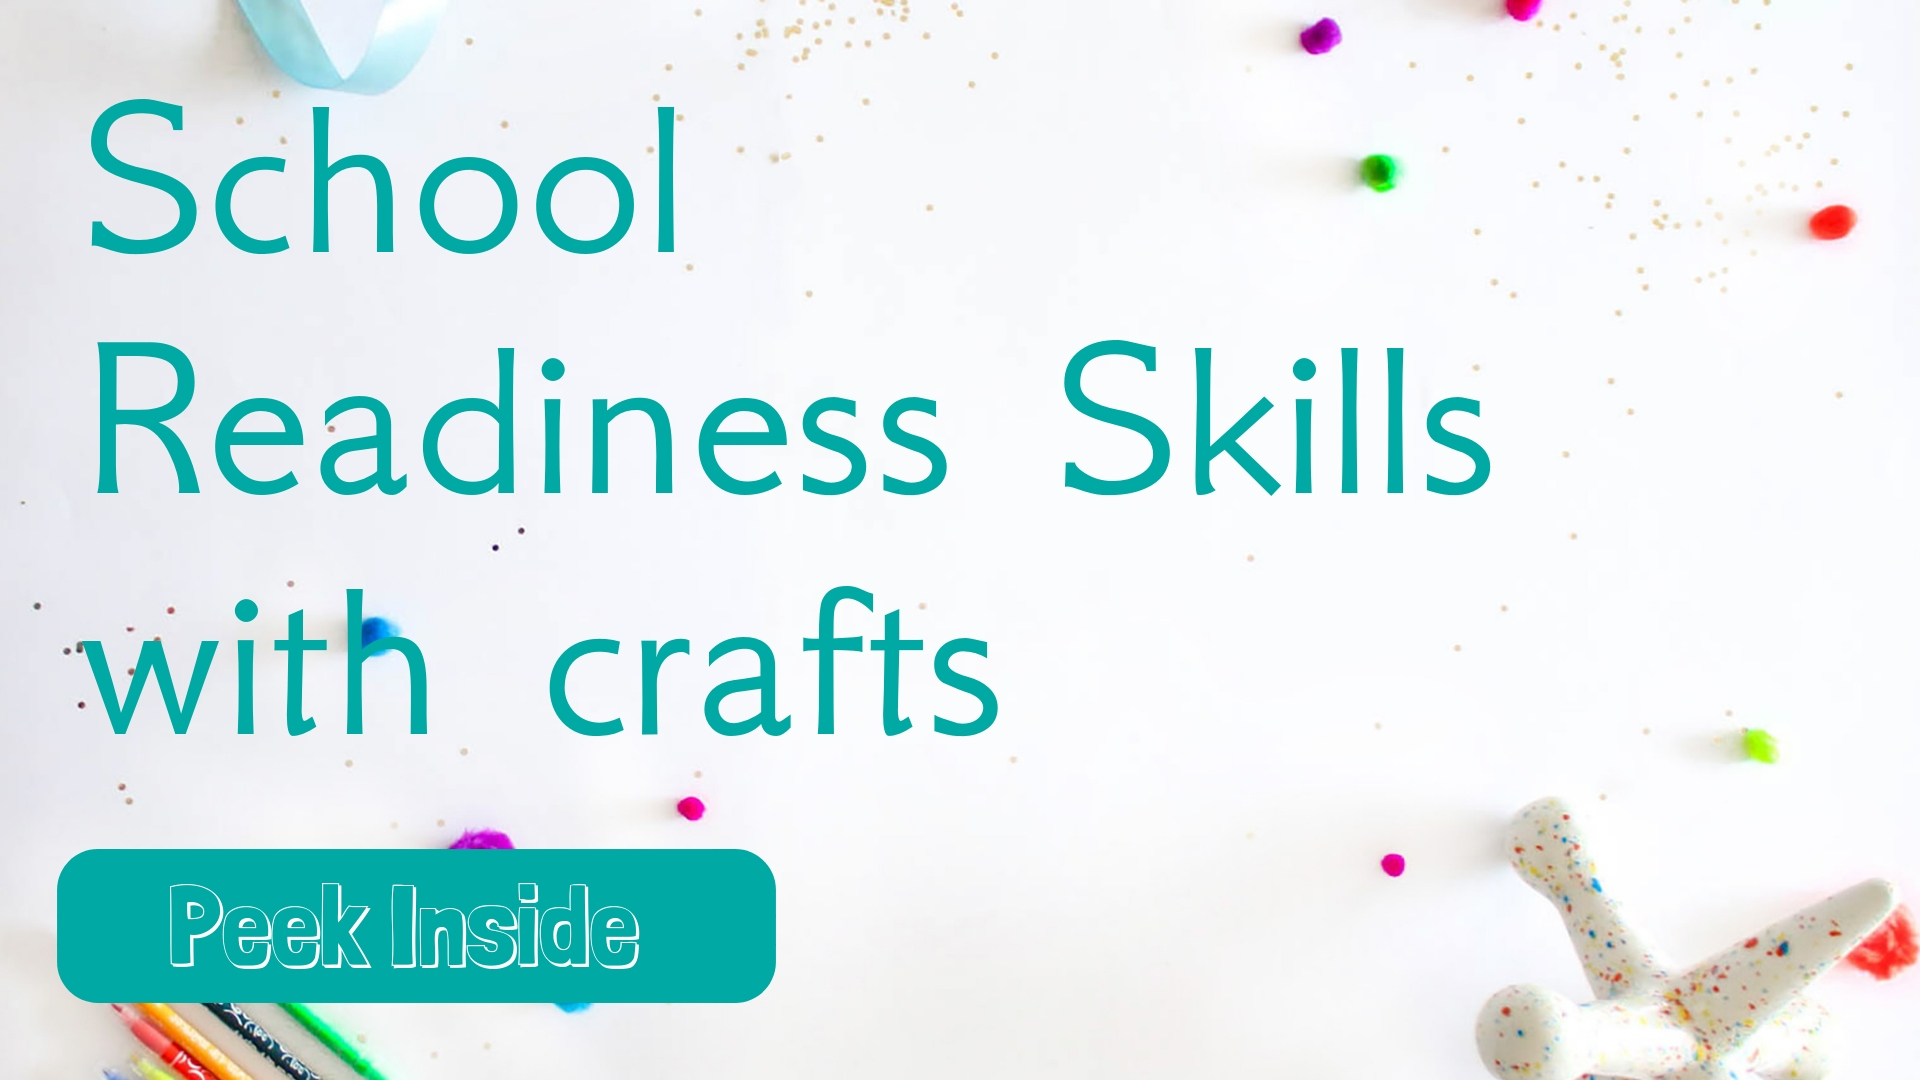 School readiness Skills for preschoolers